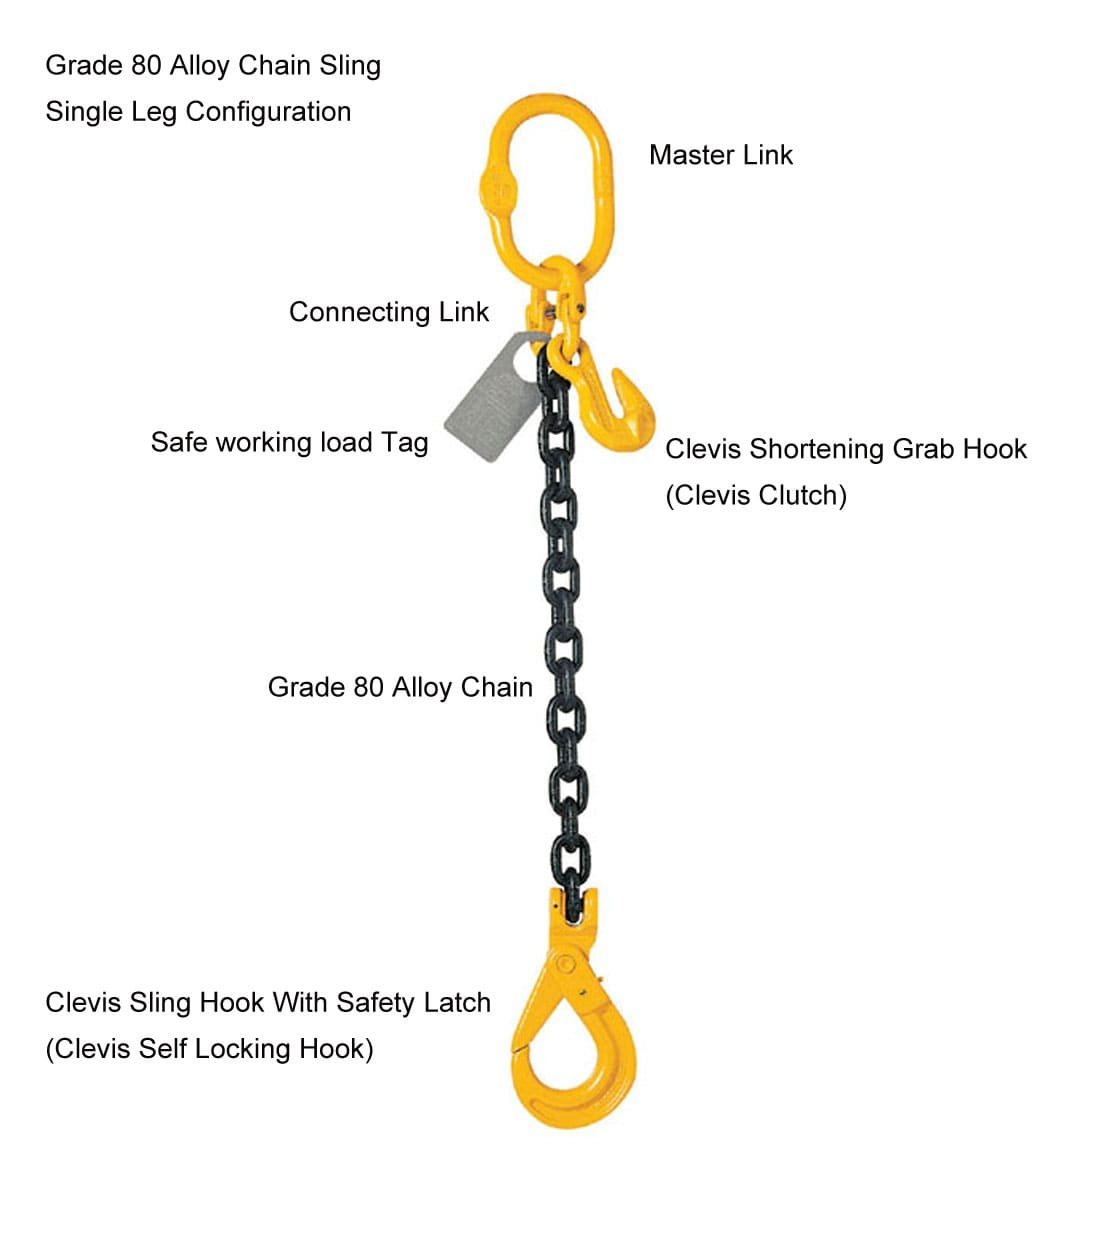 8mm, 1 leg lifting chain 3m with shortening grab hooks and clevis self-locking hooks The Ratchet Shop